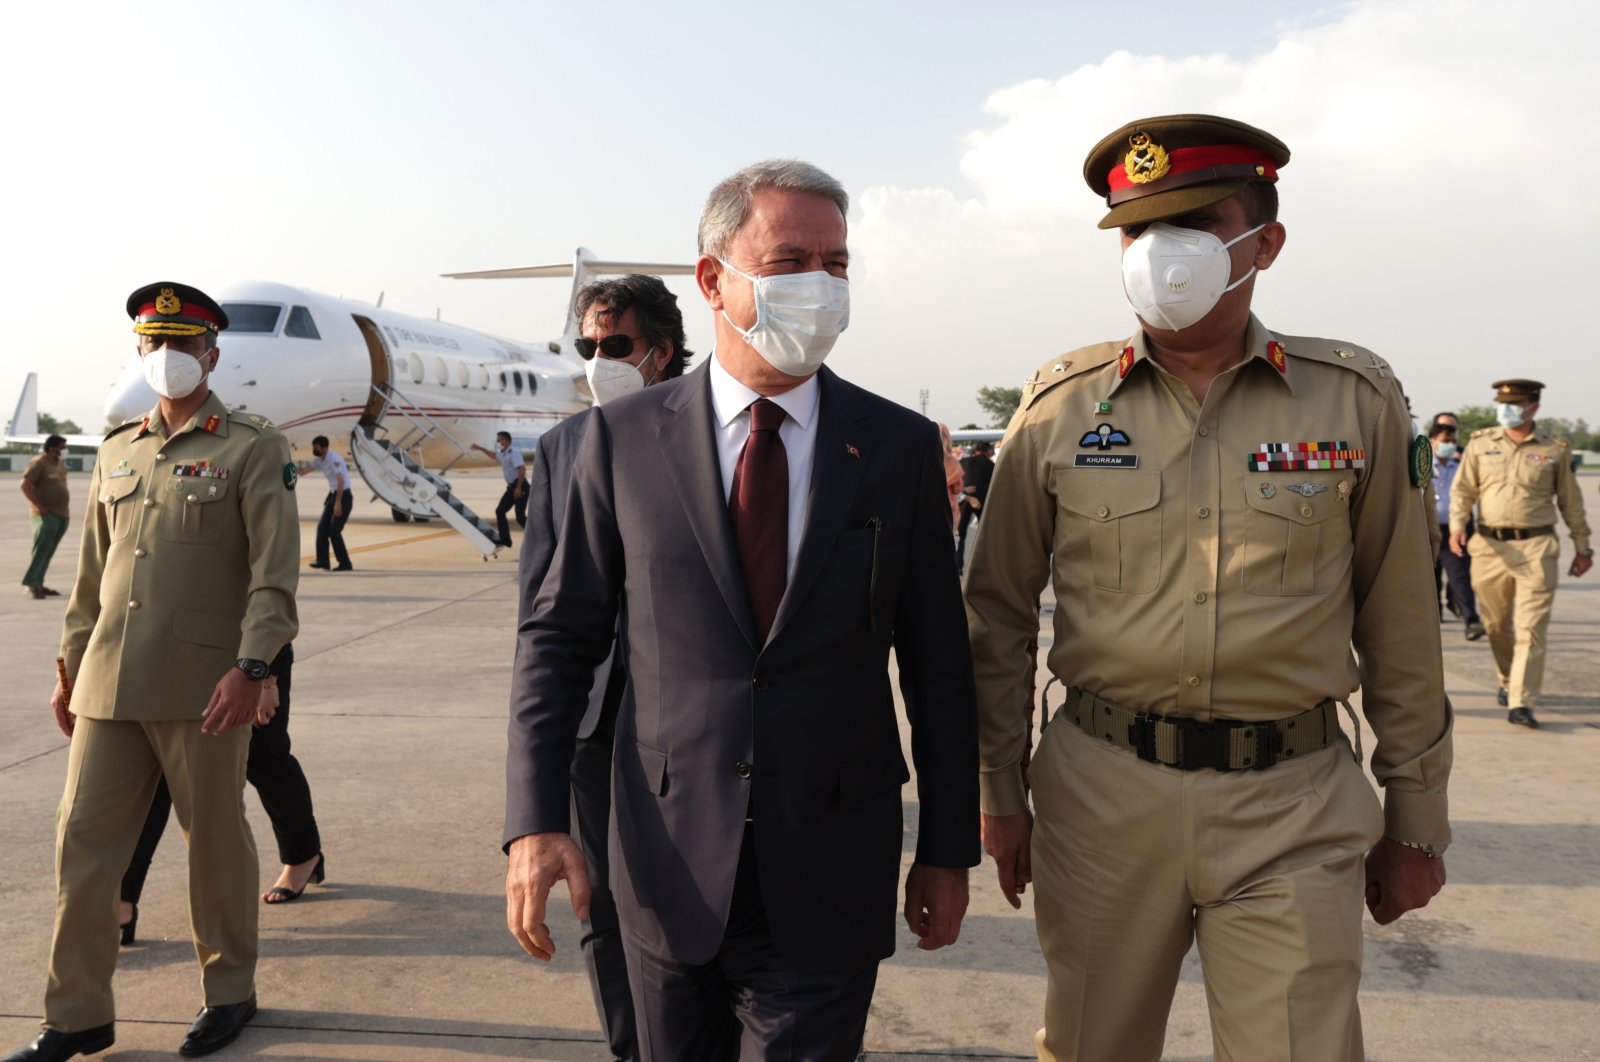 Turkey's Defense Minister Hulusi Akar (L) is received by Pakistani authorities at the airport in Islamabad, Pakistan, Aug. 10, 2021. (AA Photo)